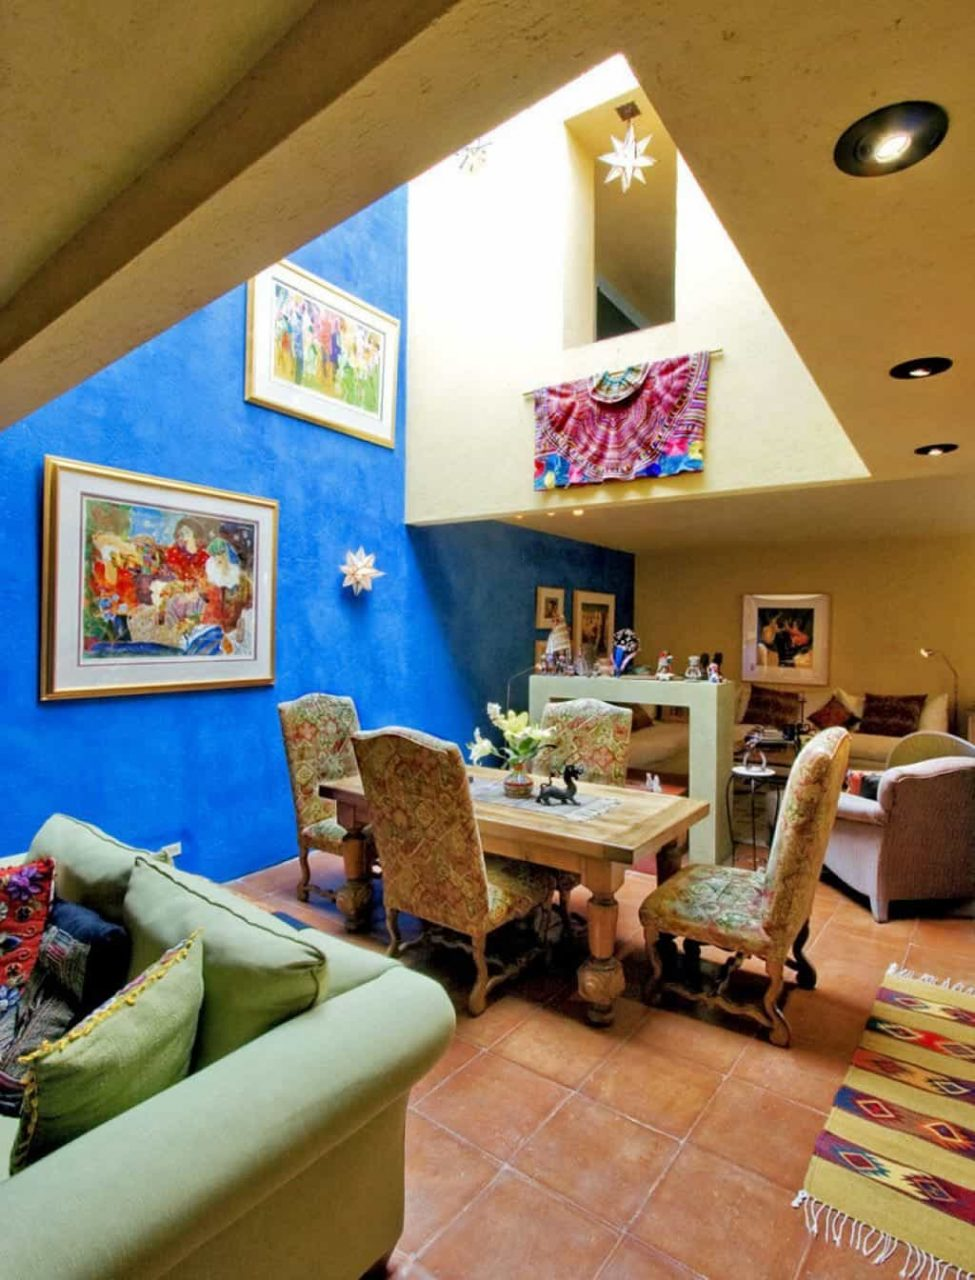 Mexican Interior Open Space Dining Room With Painting Wall Arts